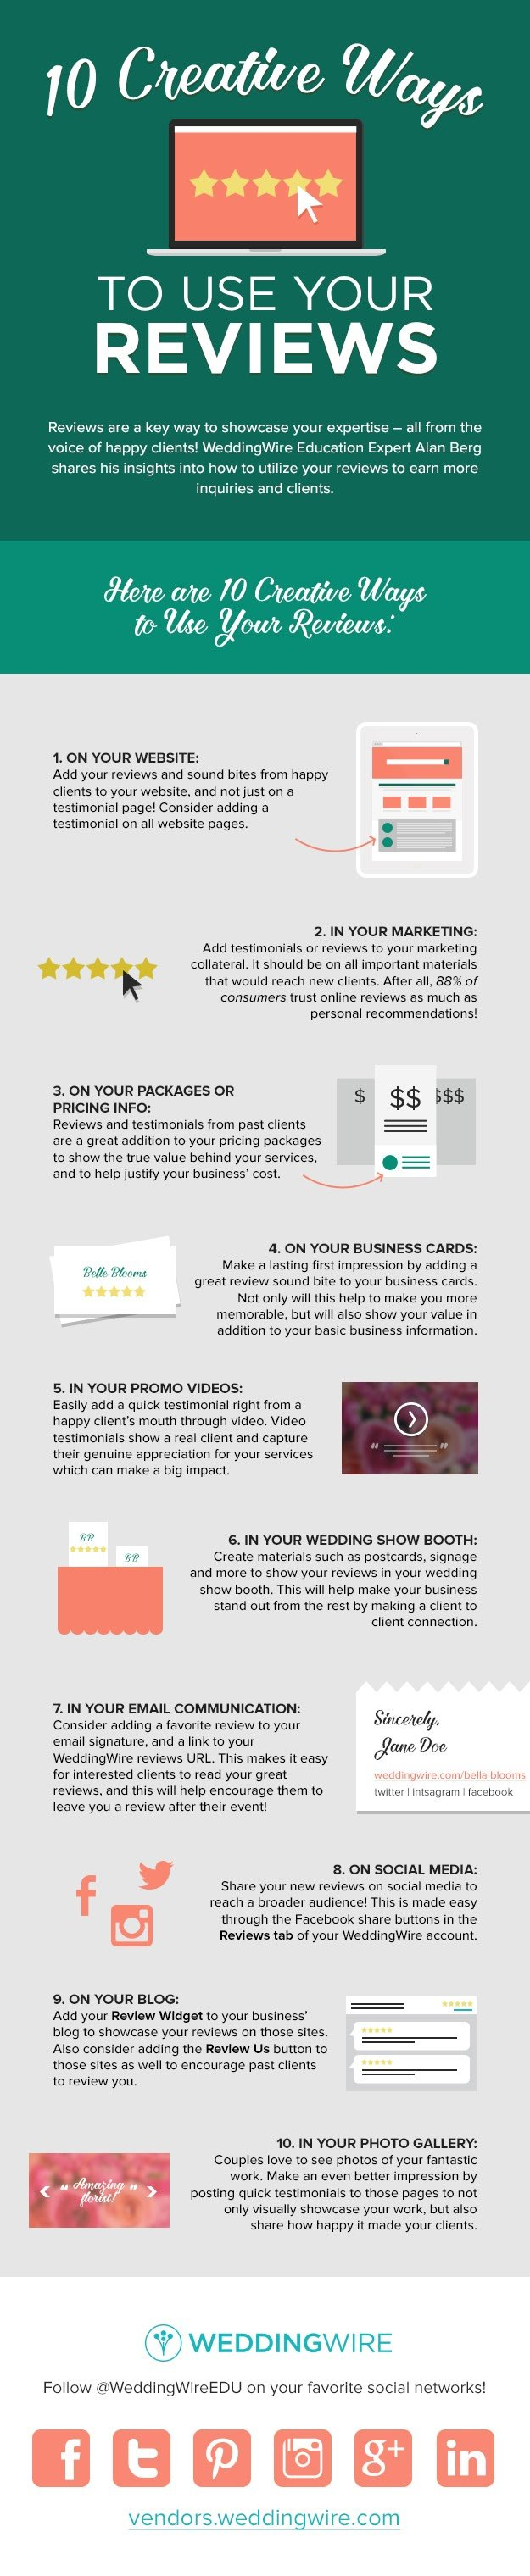 10 Creative Ways to Use Your Reviews [Infographic] | Social Media Today